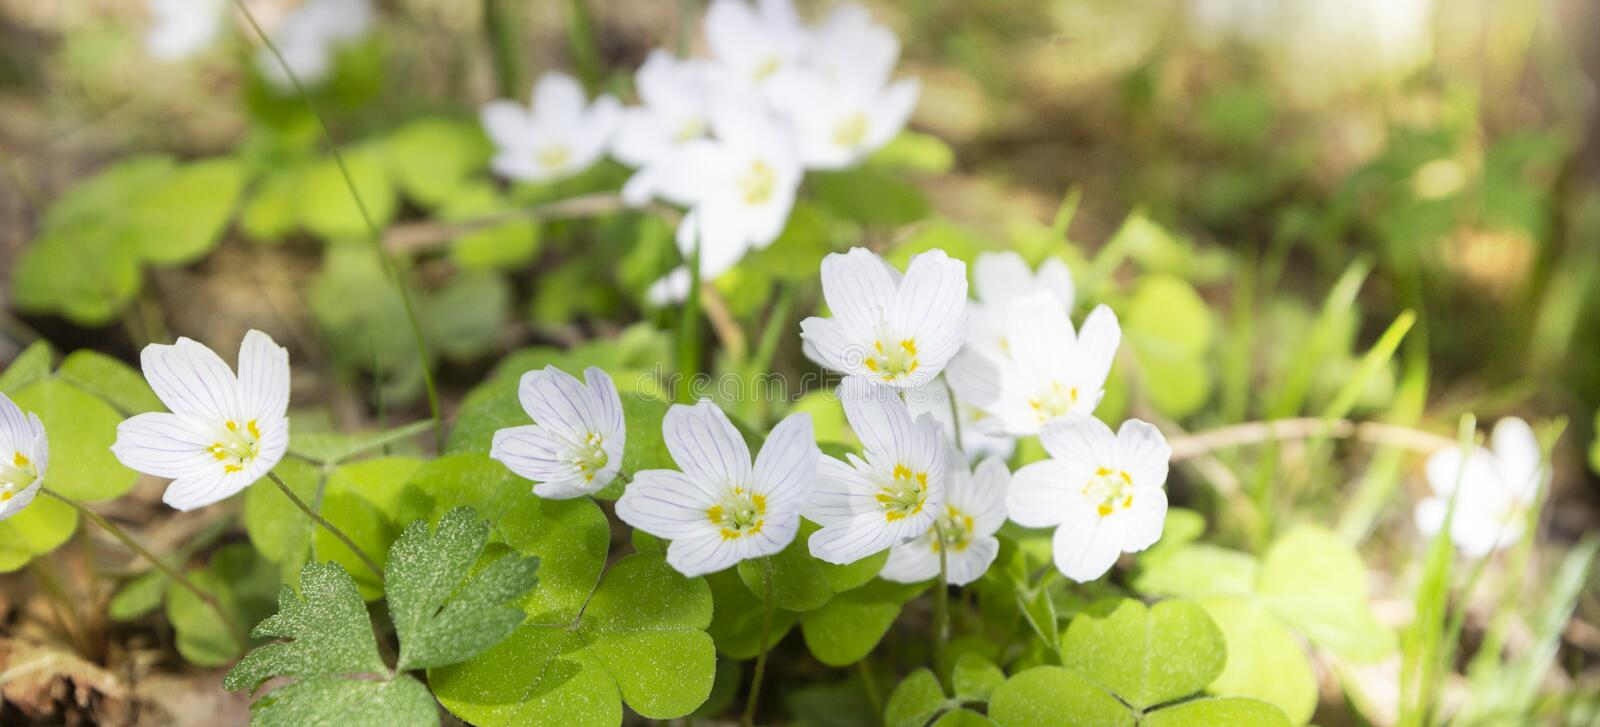 Spring banner with snowdrops, first early flowers in forest in early morning in sunshine.  royalty free stock photo